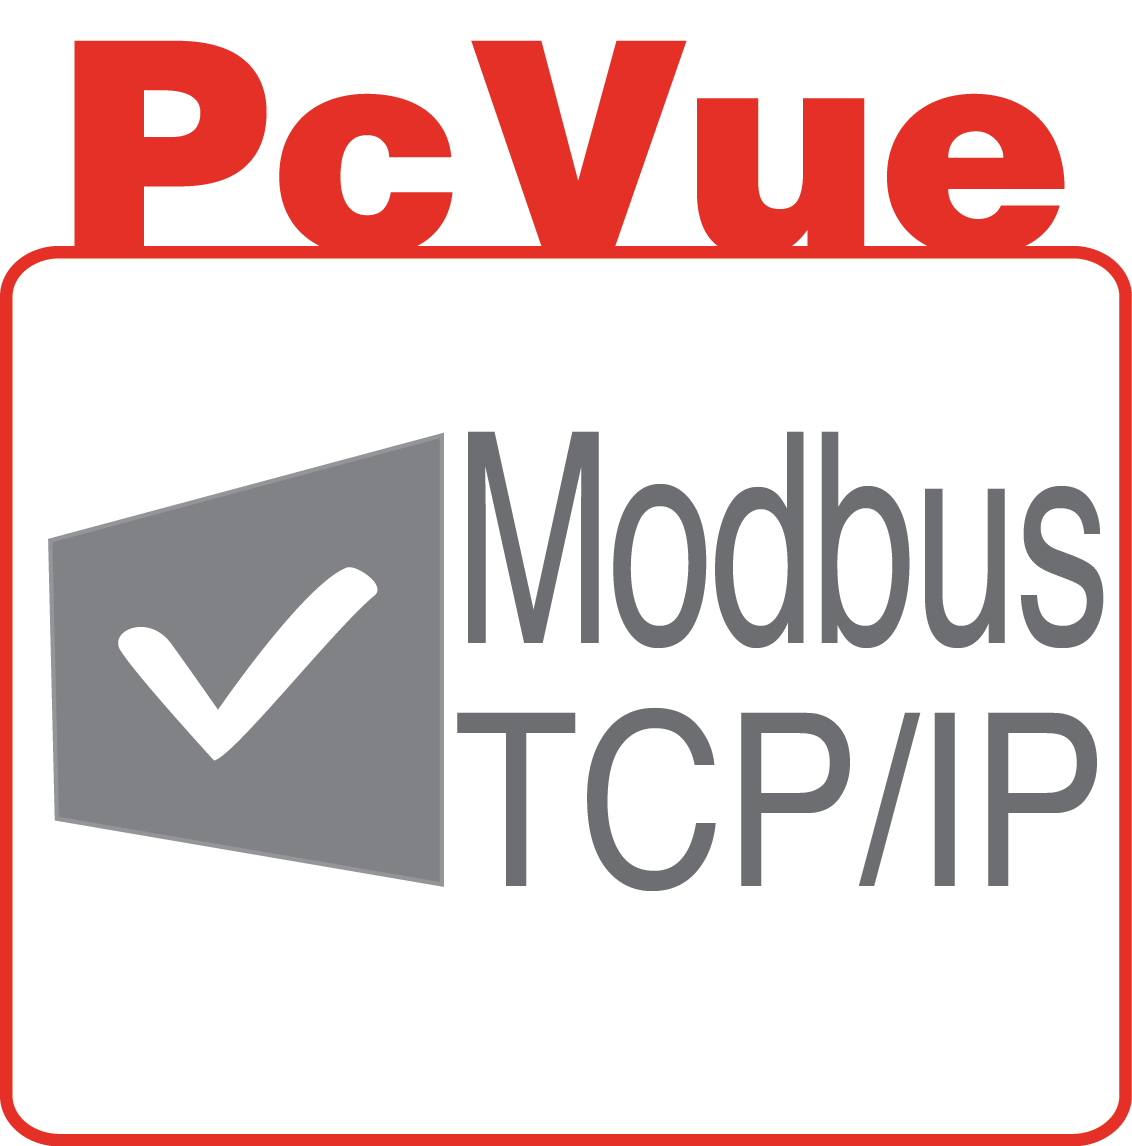 PcVue icon features Modbus TCP